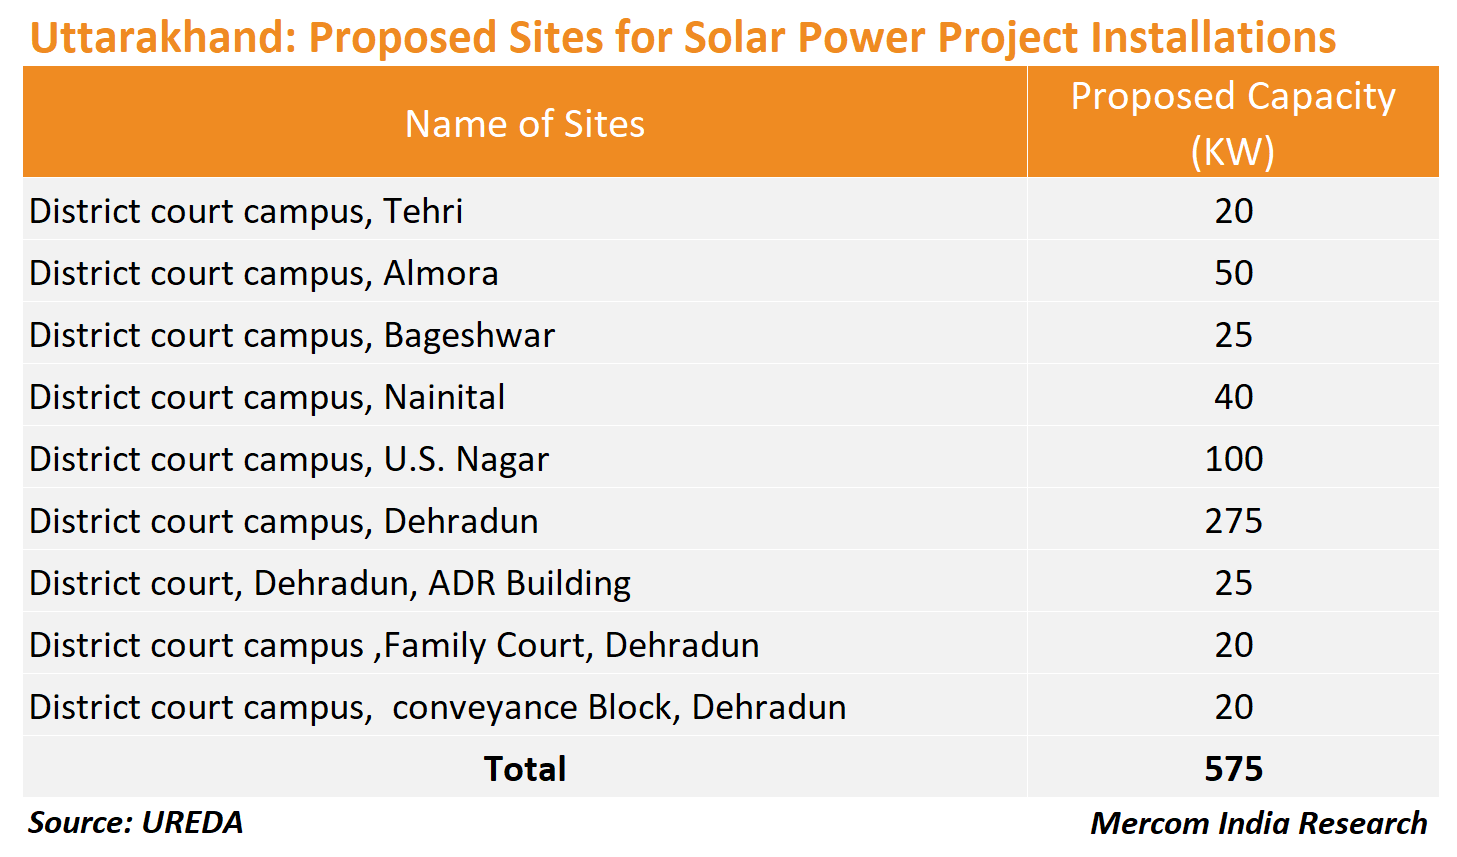 Uttarkhand Proposed Sites for Solar Power Installations